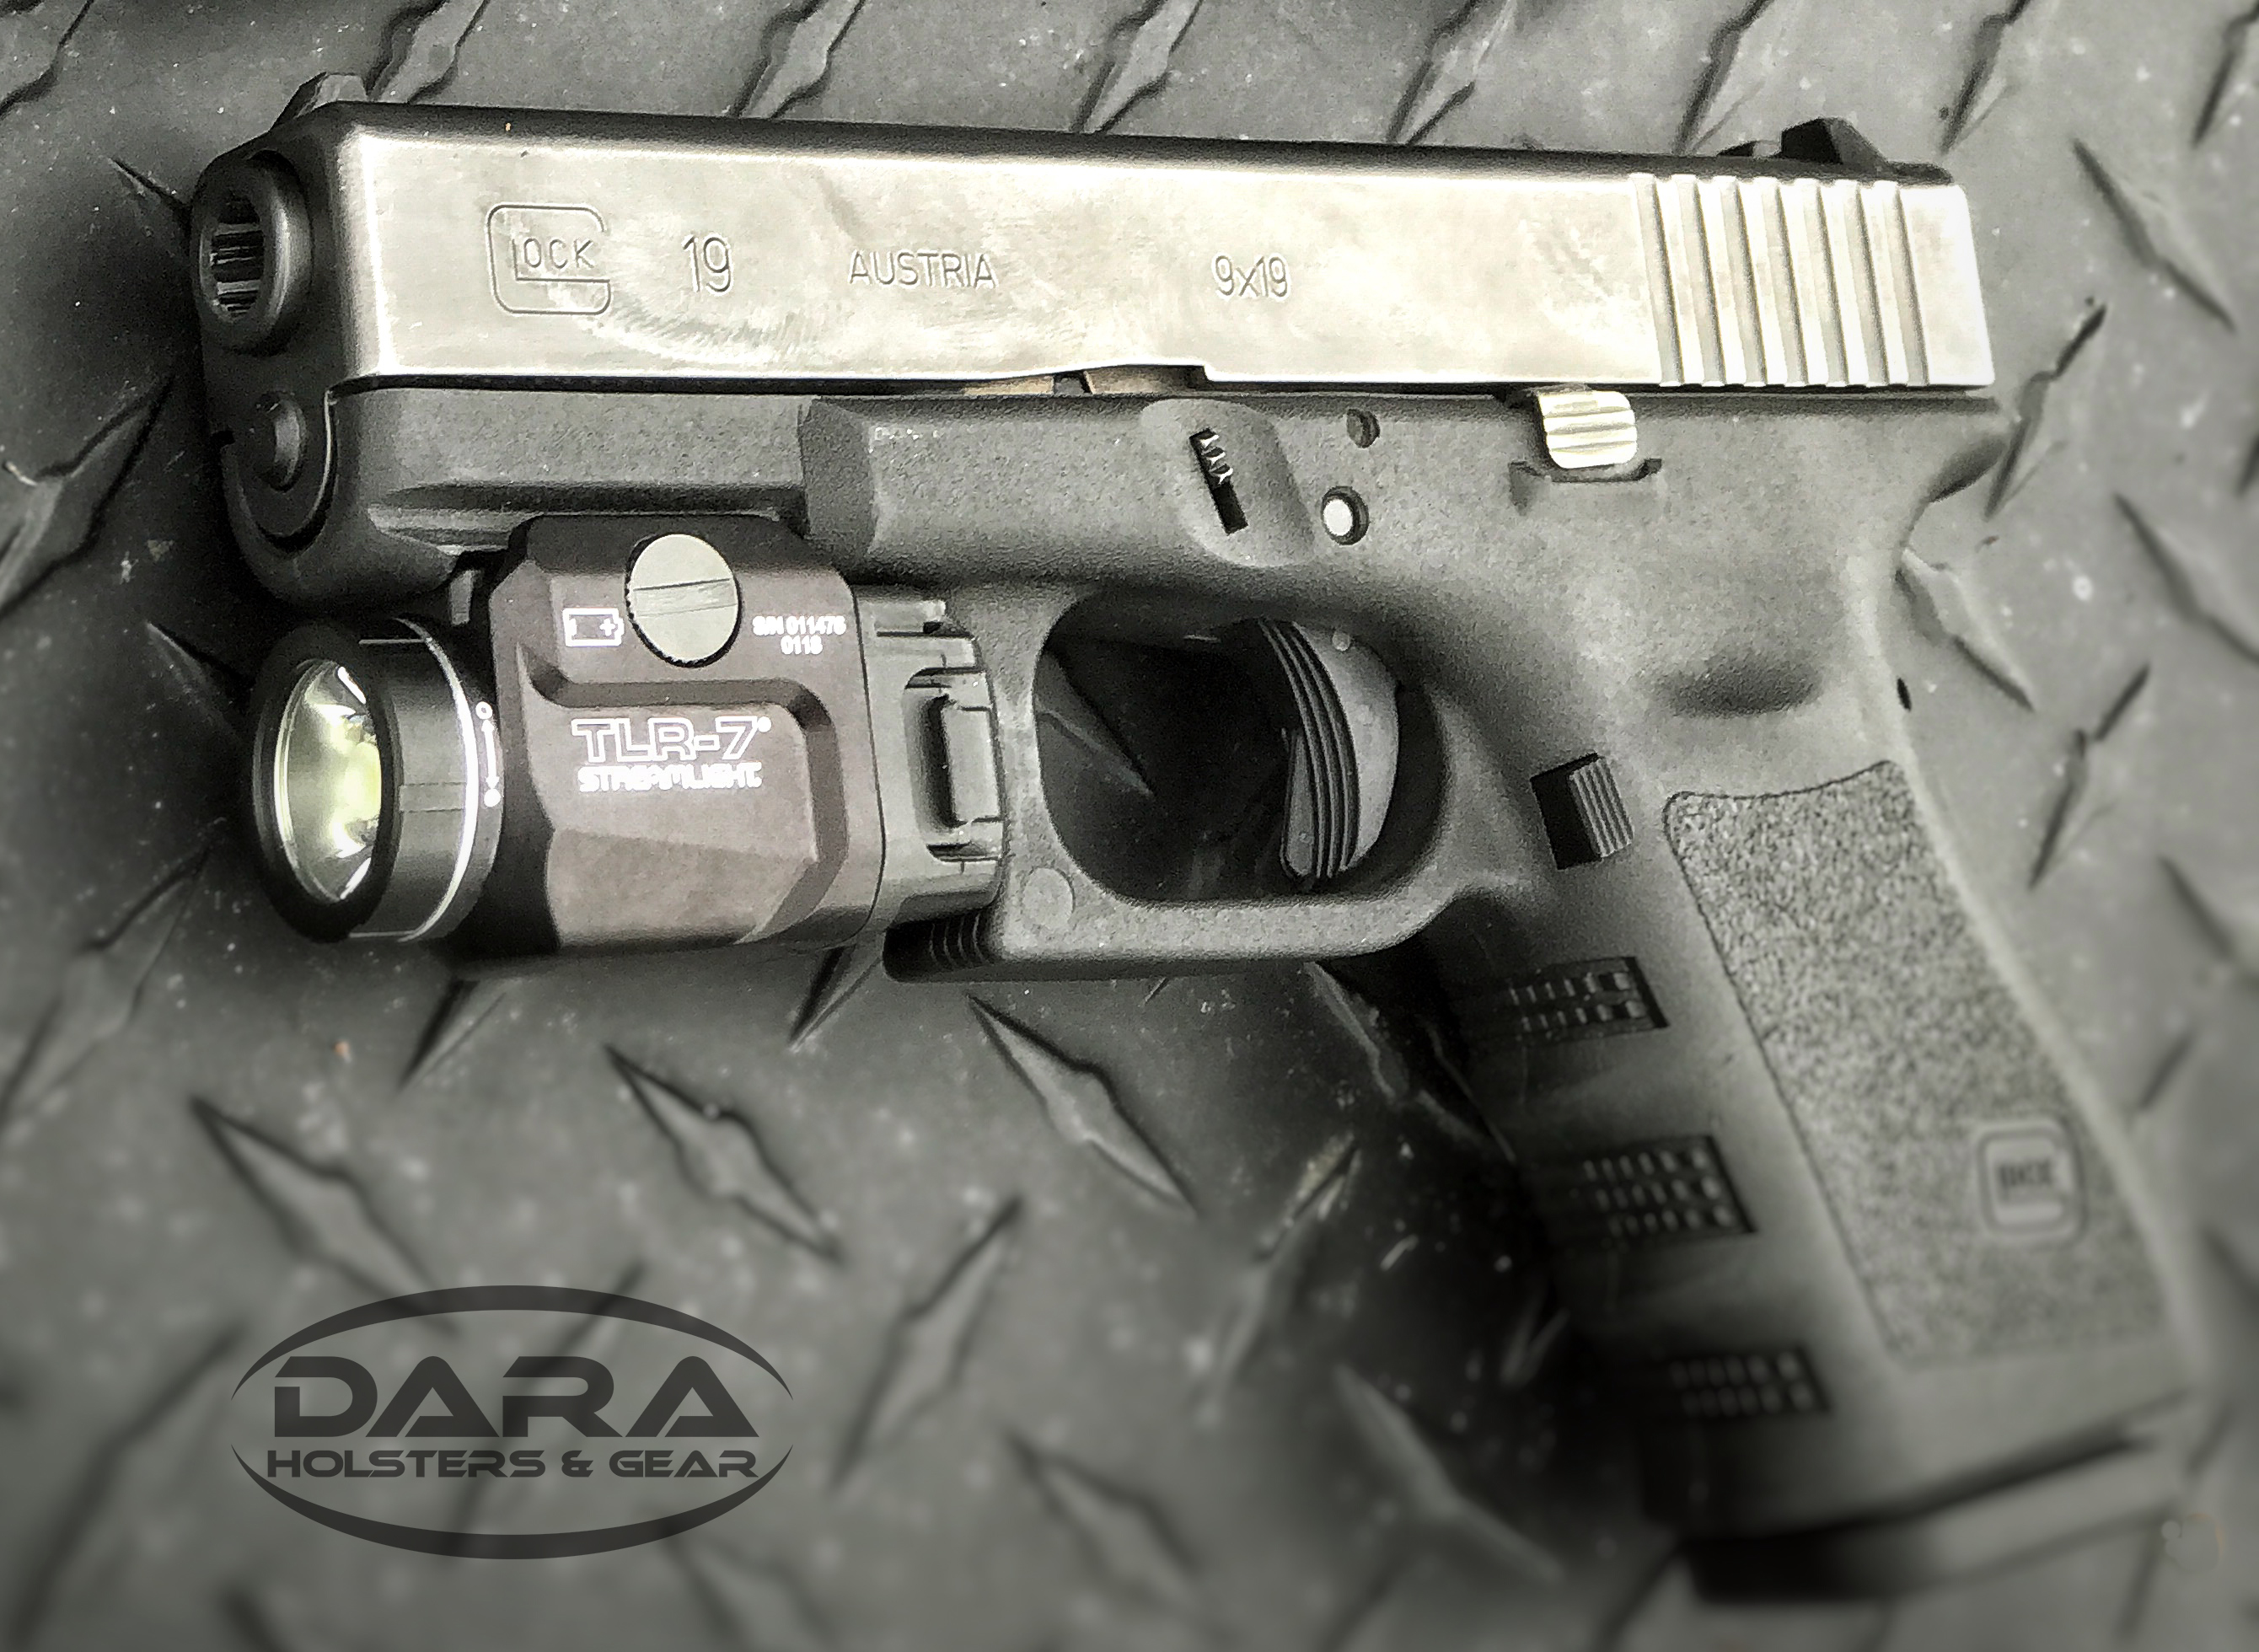 Glock 19 with Streamlight TLR-7 Holsters - DARA HOLSTERS & GEAR